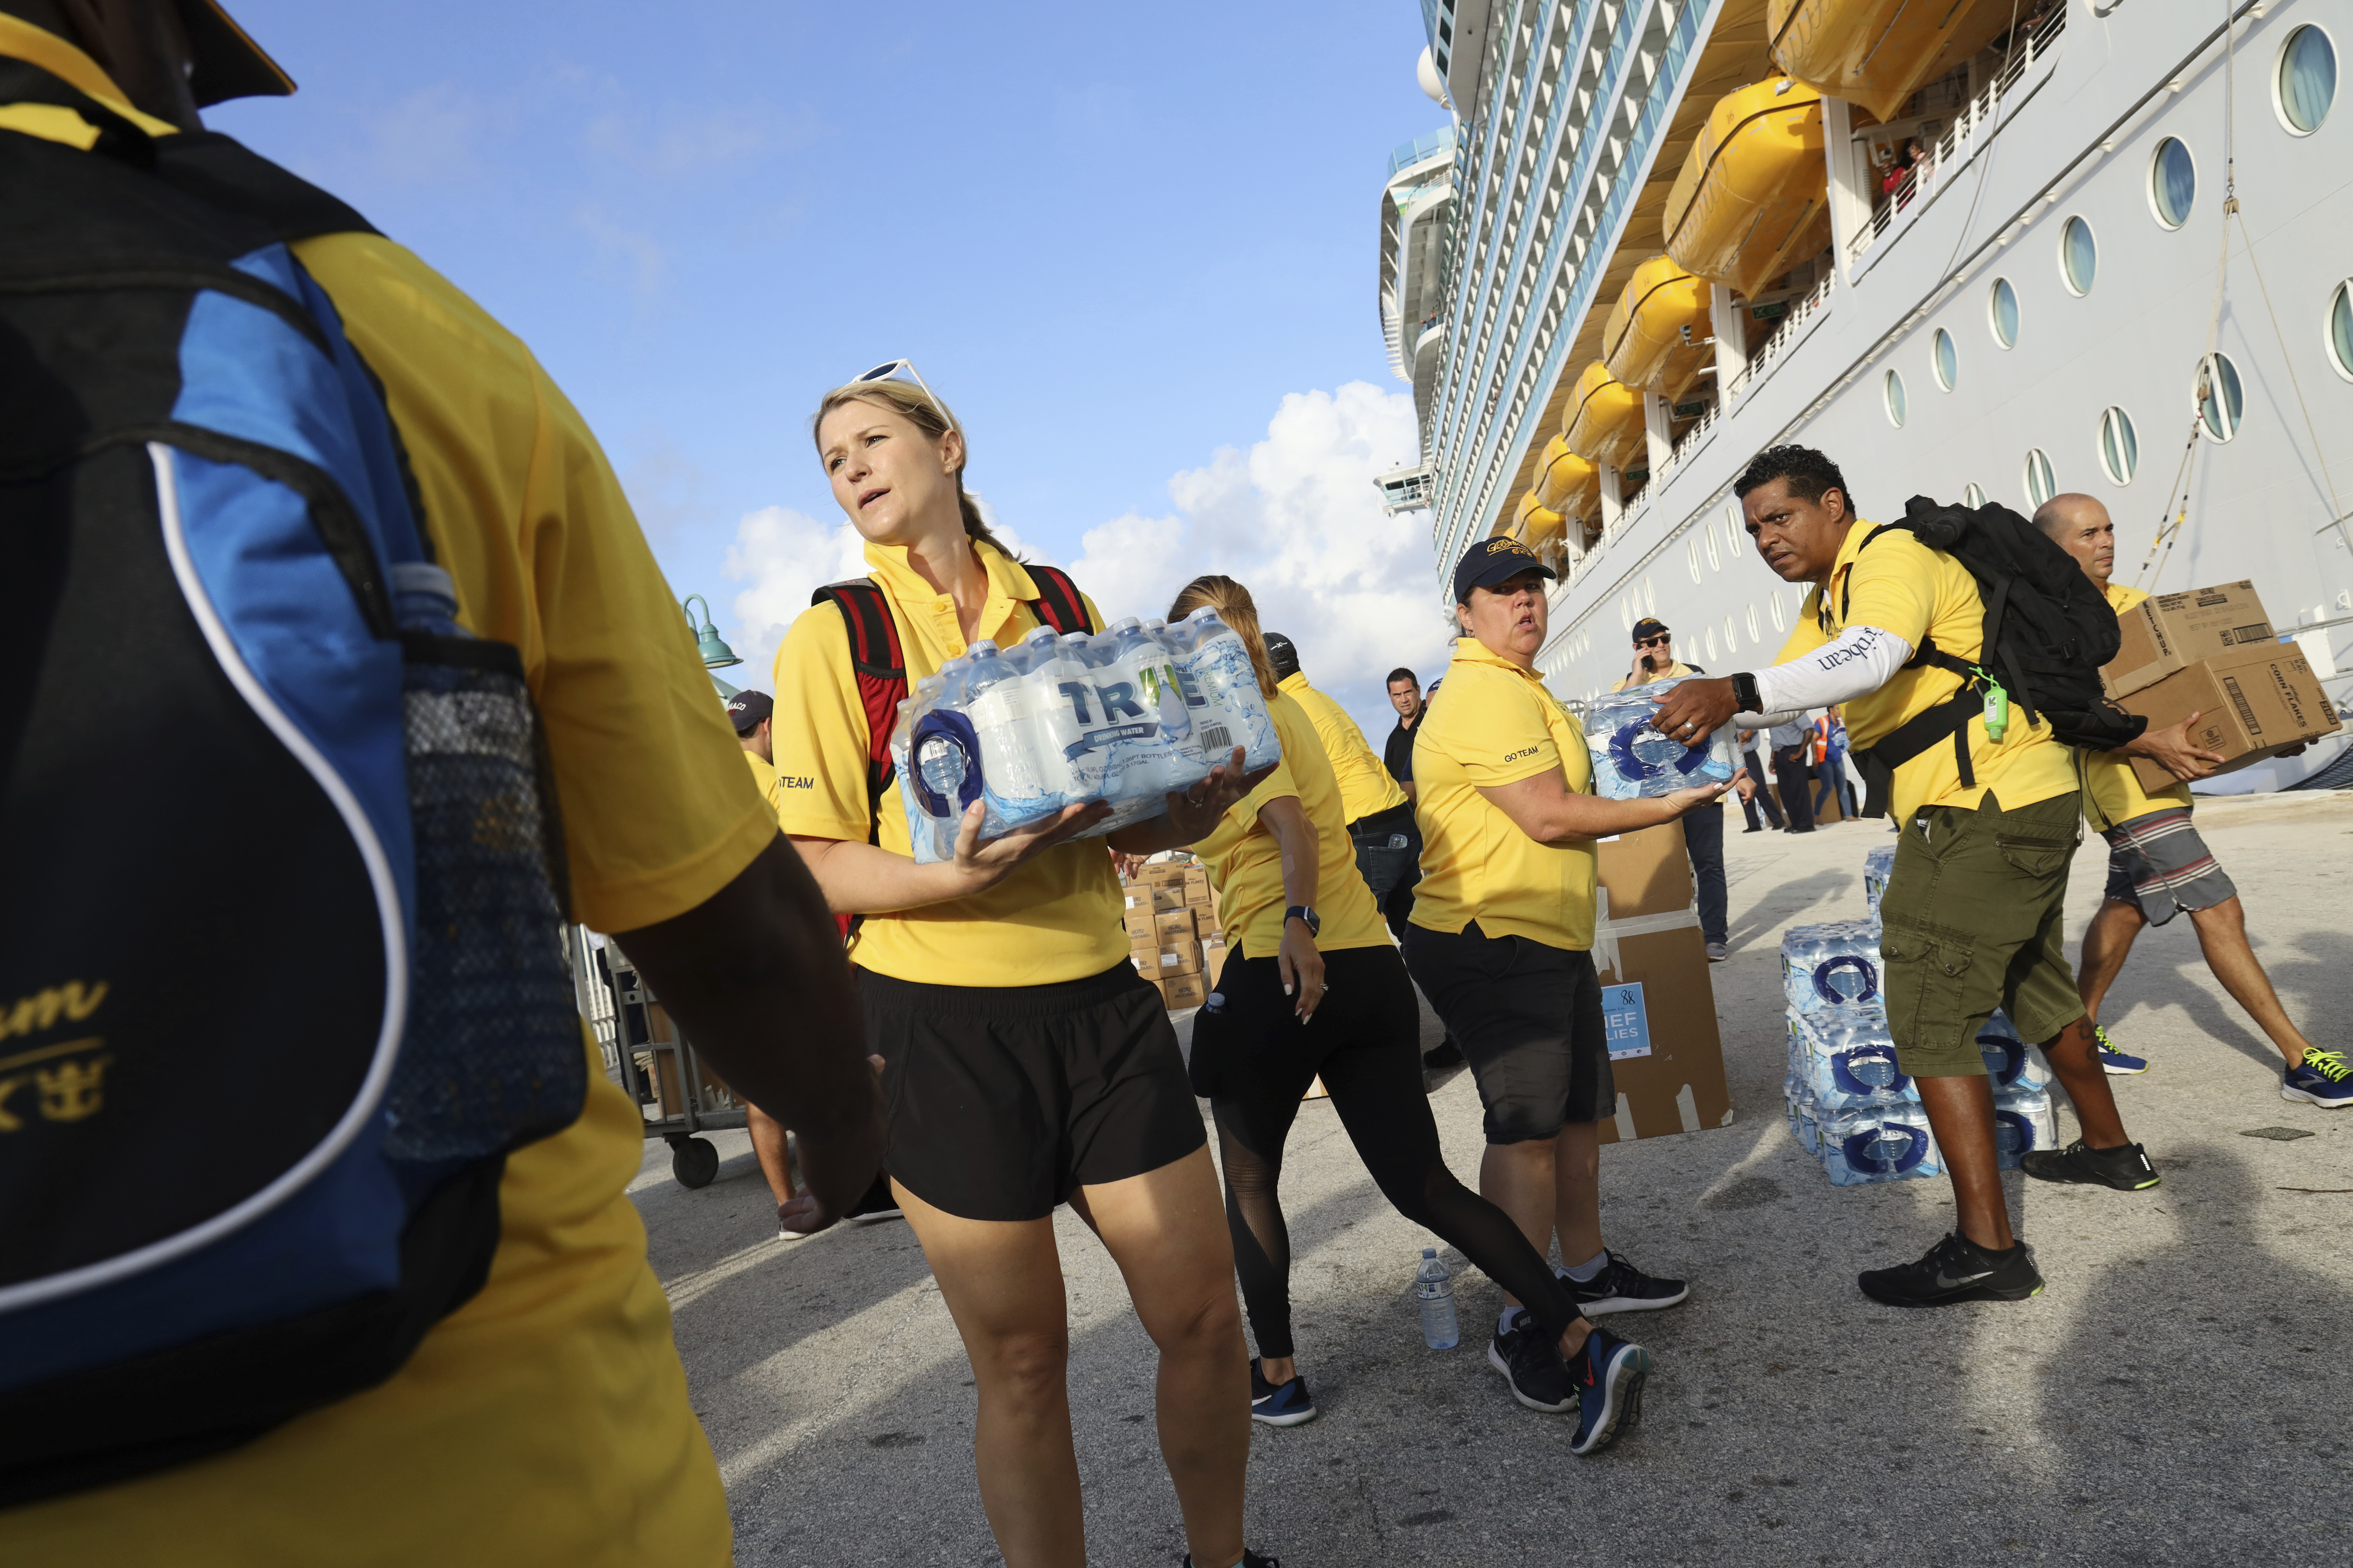 Volunteers from the Royal Caribbean's Go Team load water and relief supplies on to trucks on the quayside of Freeport Harbour in Grand Bahama, Bahamas, Sunday, Sept. 8, 2019, in the wake of Hurricane Dorian. Electricity remains down in Grand Bahama and there is still no running water one week after the storm hit. (AP Photo/Tim Aylen)